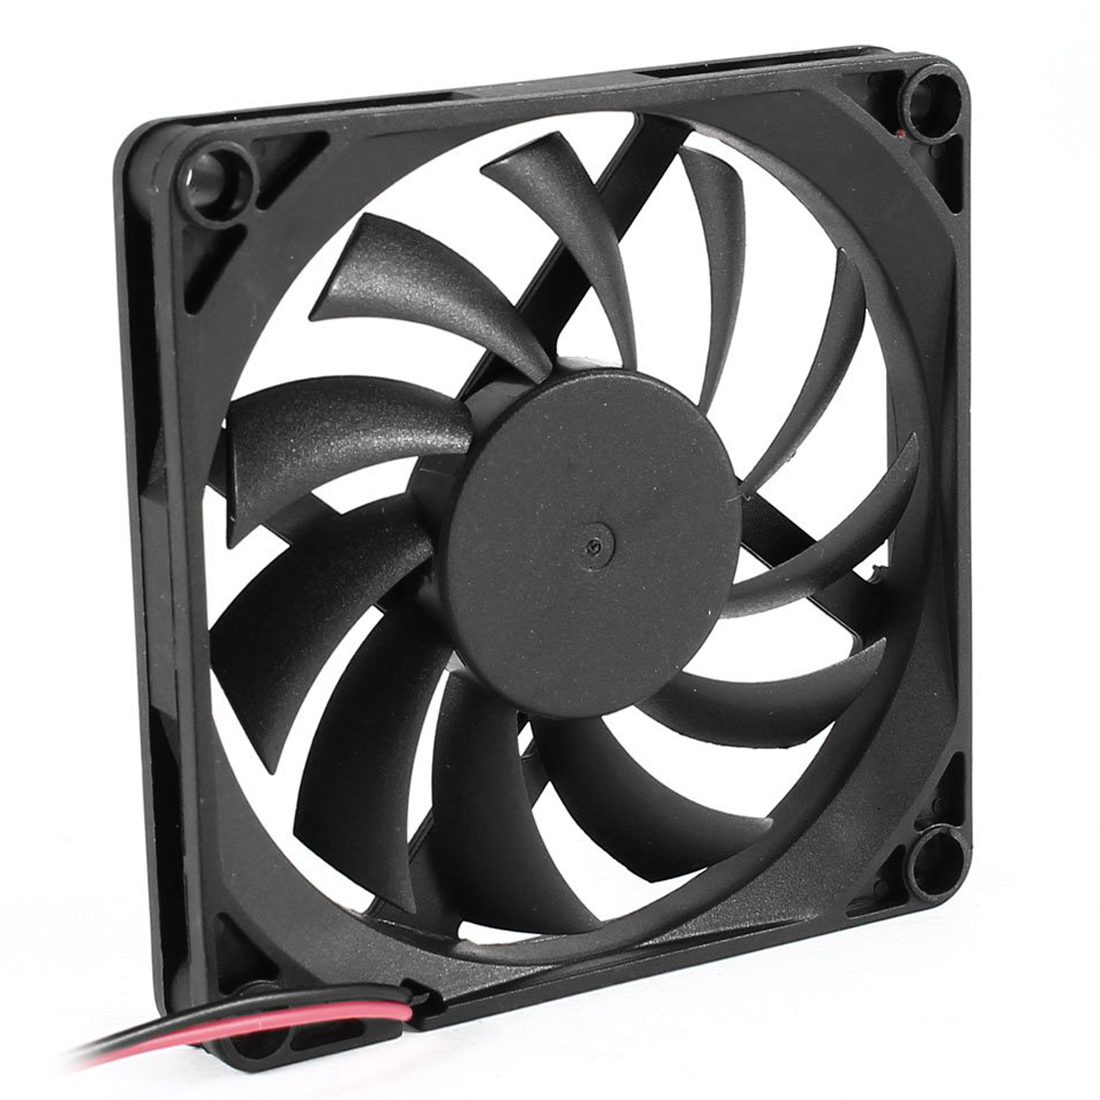 80mm 2 Pin Connector Cooling Fan For Computer Case Cpu Cooler Wiring Diagram Further Blower 12v Puter On Dell Radiator Ad 4894462373262 Ebay